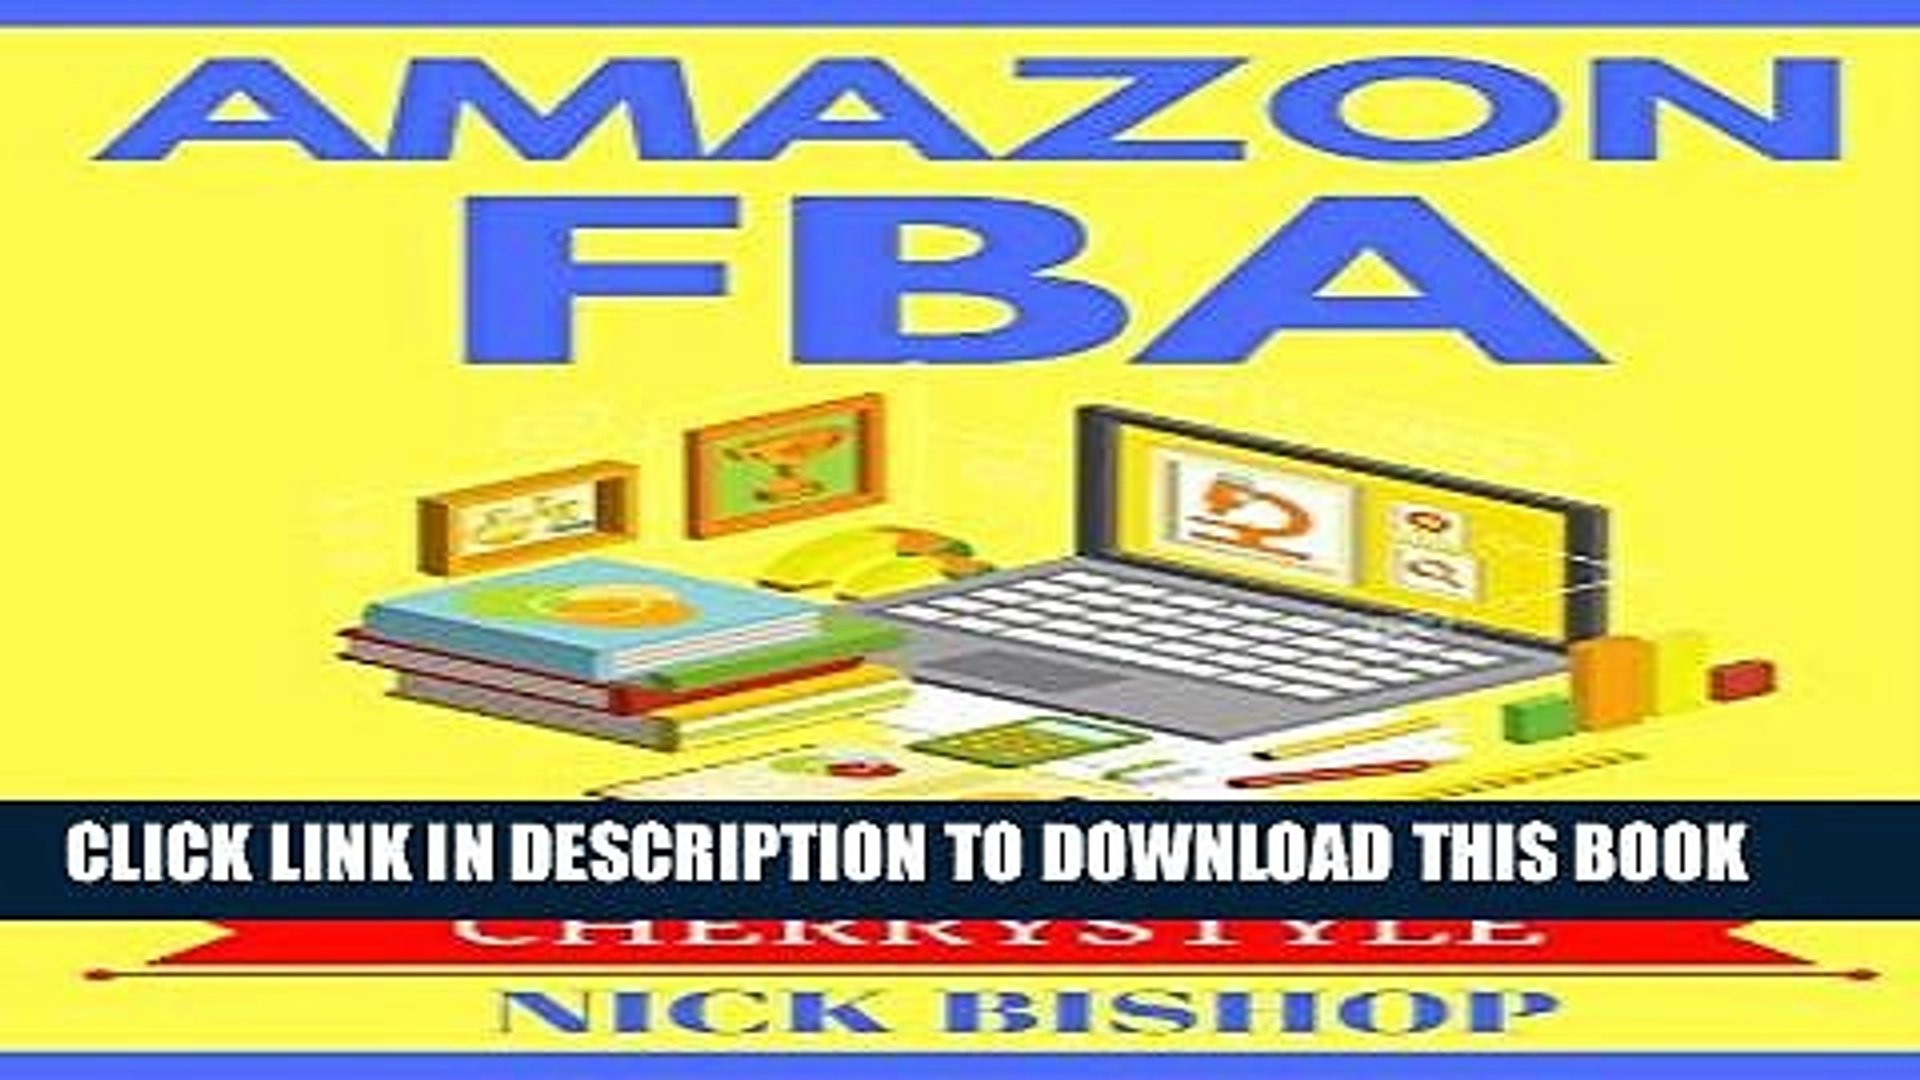 [New] Ebook Amazon FBA: Step by Step Guide to start and grow your amazon business(amazon fba